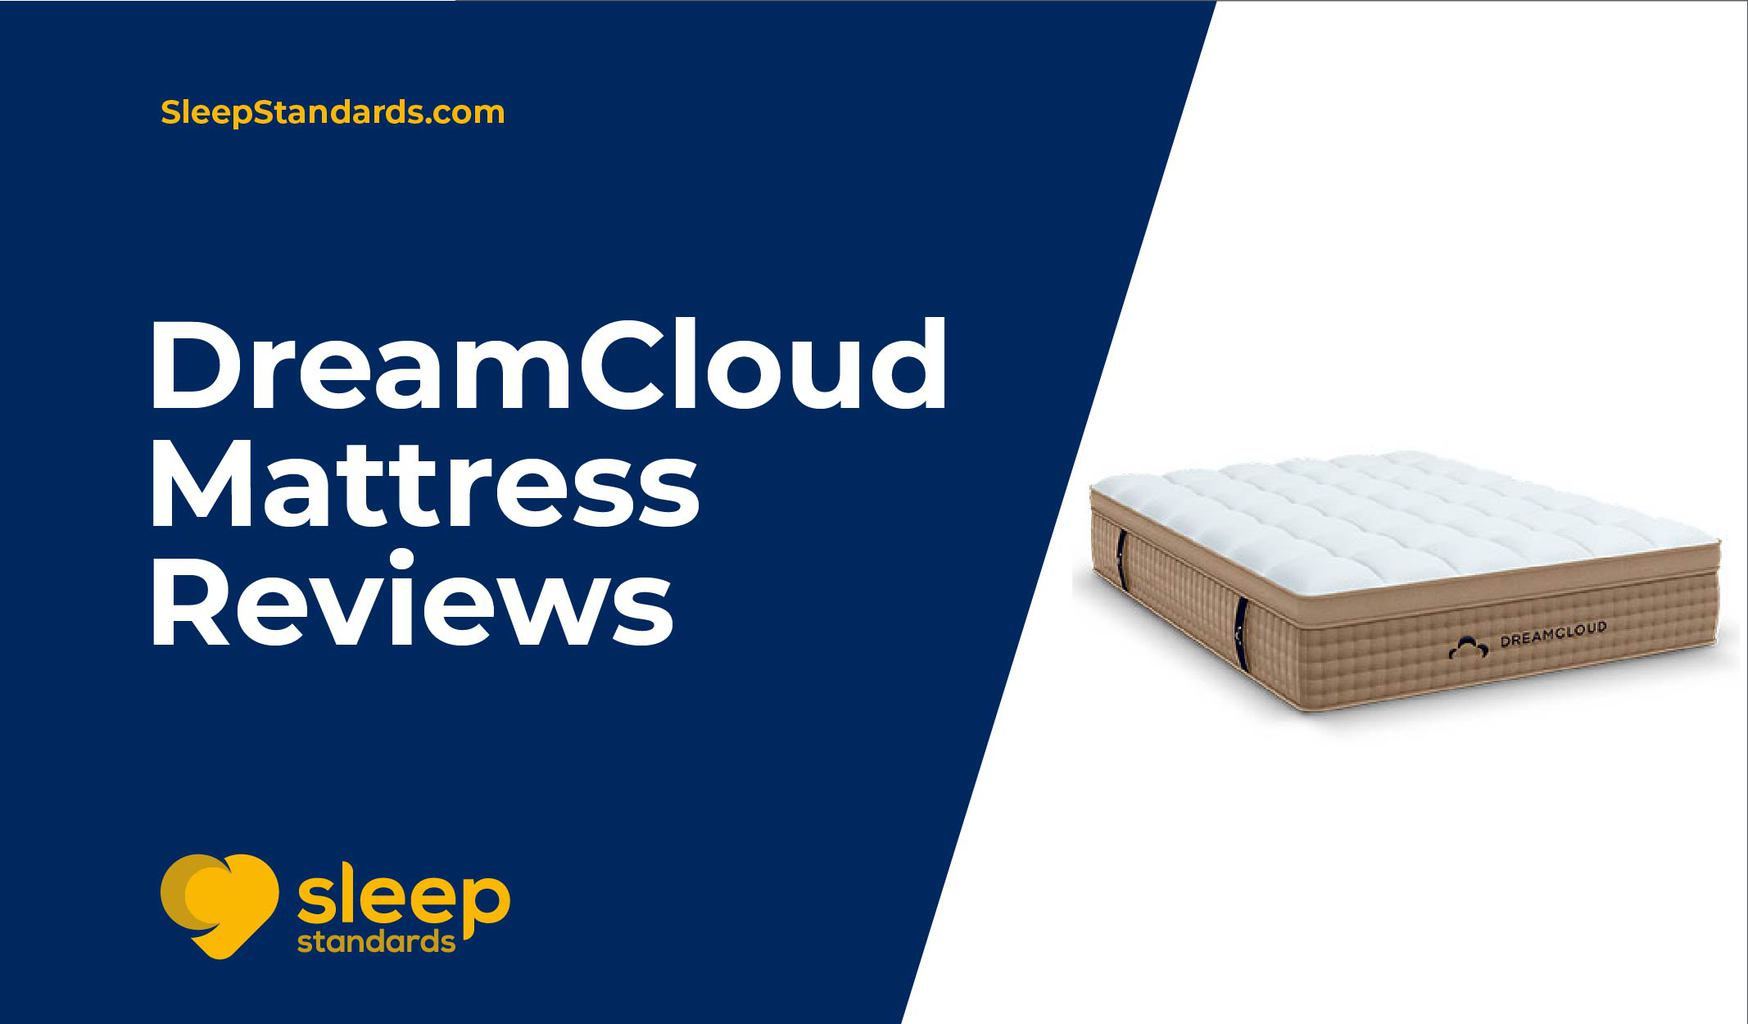 DreamCloud Mattress Reviews (2020) | SleepStandards